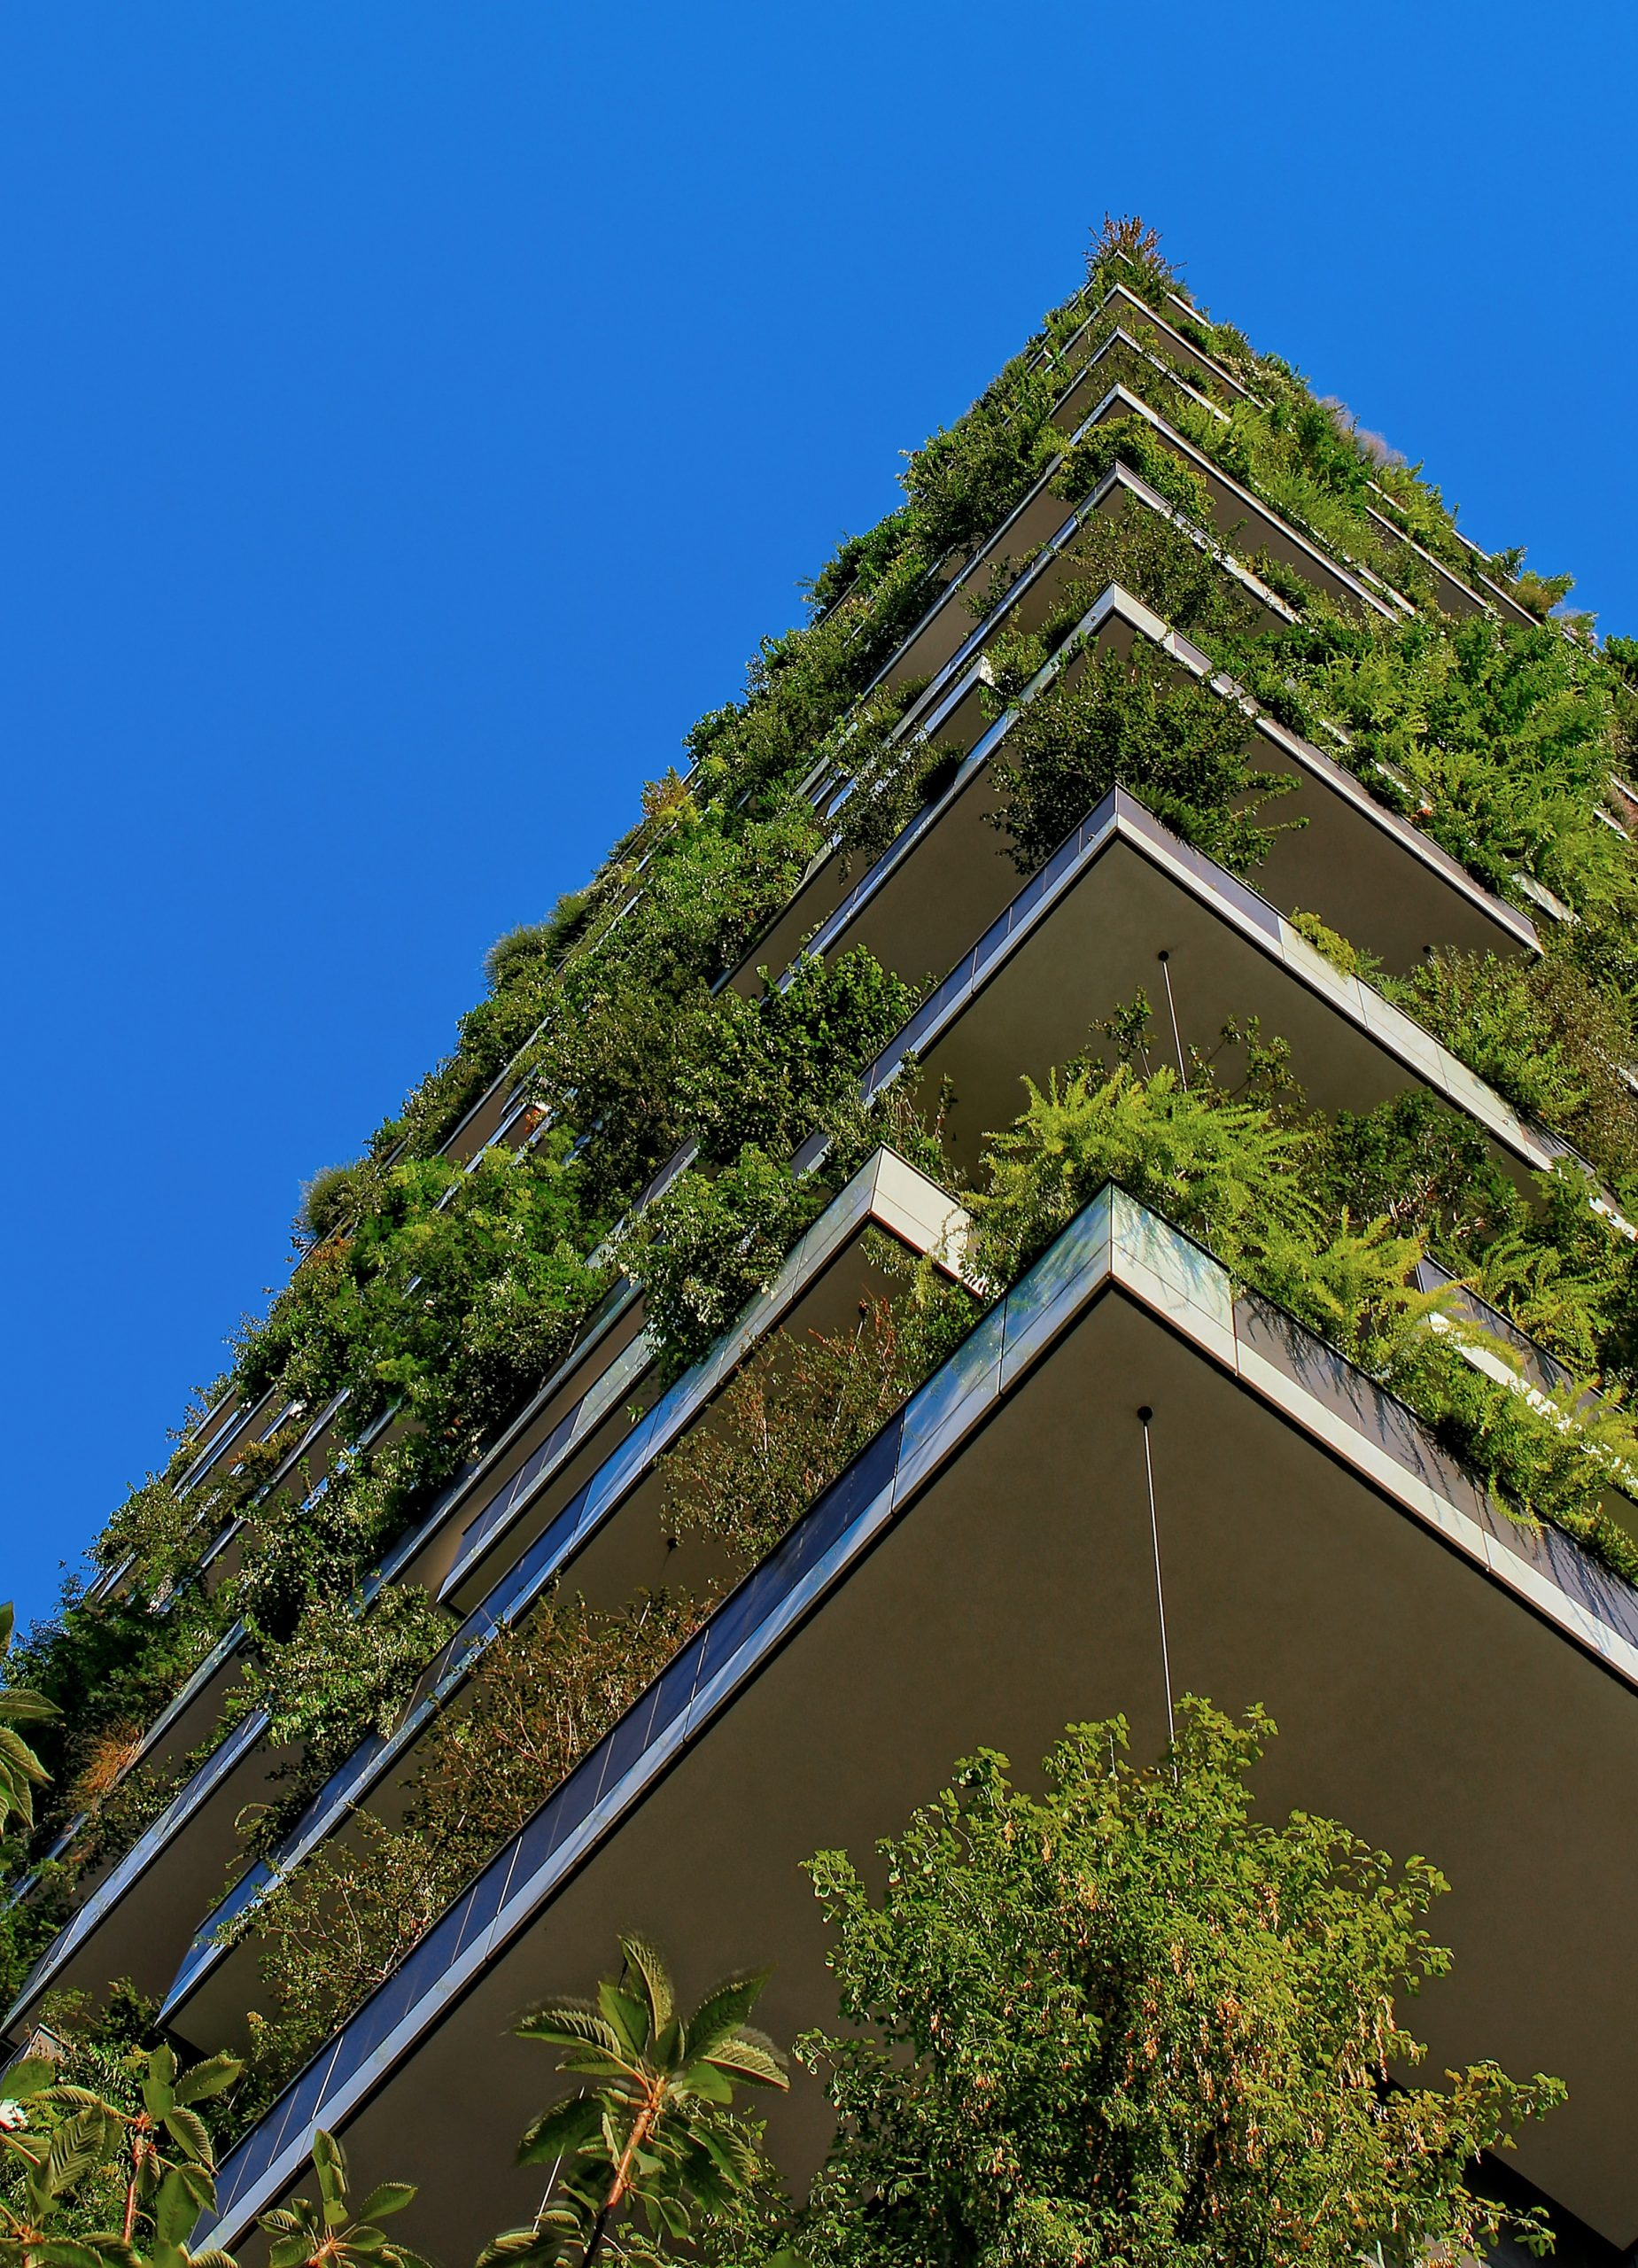 The Green Bond Scheme: what is it and how does it impact UK savers?